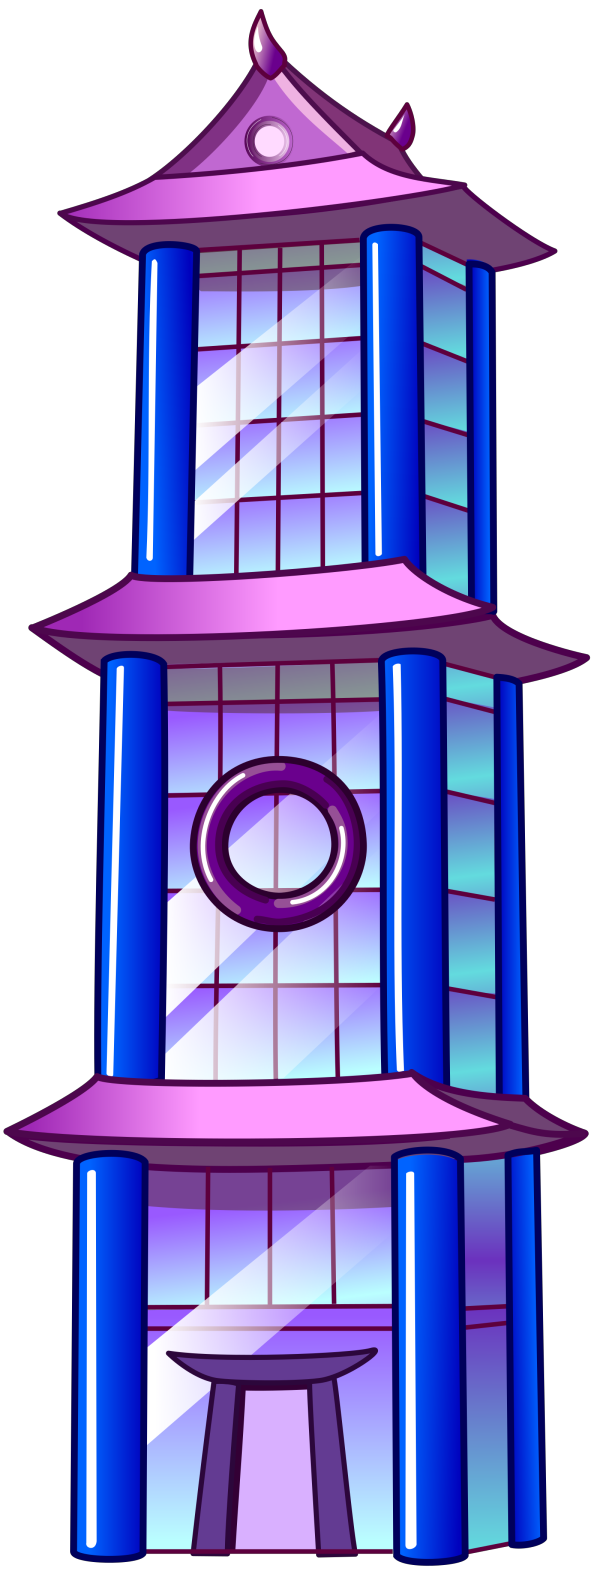 Skyscraper Roofs PNG Images